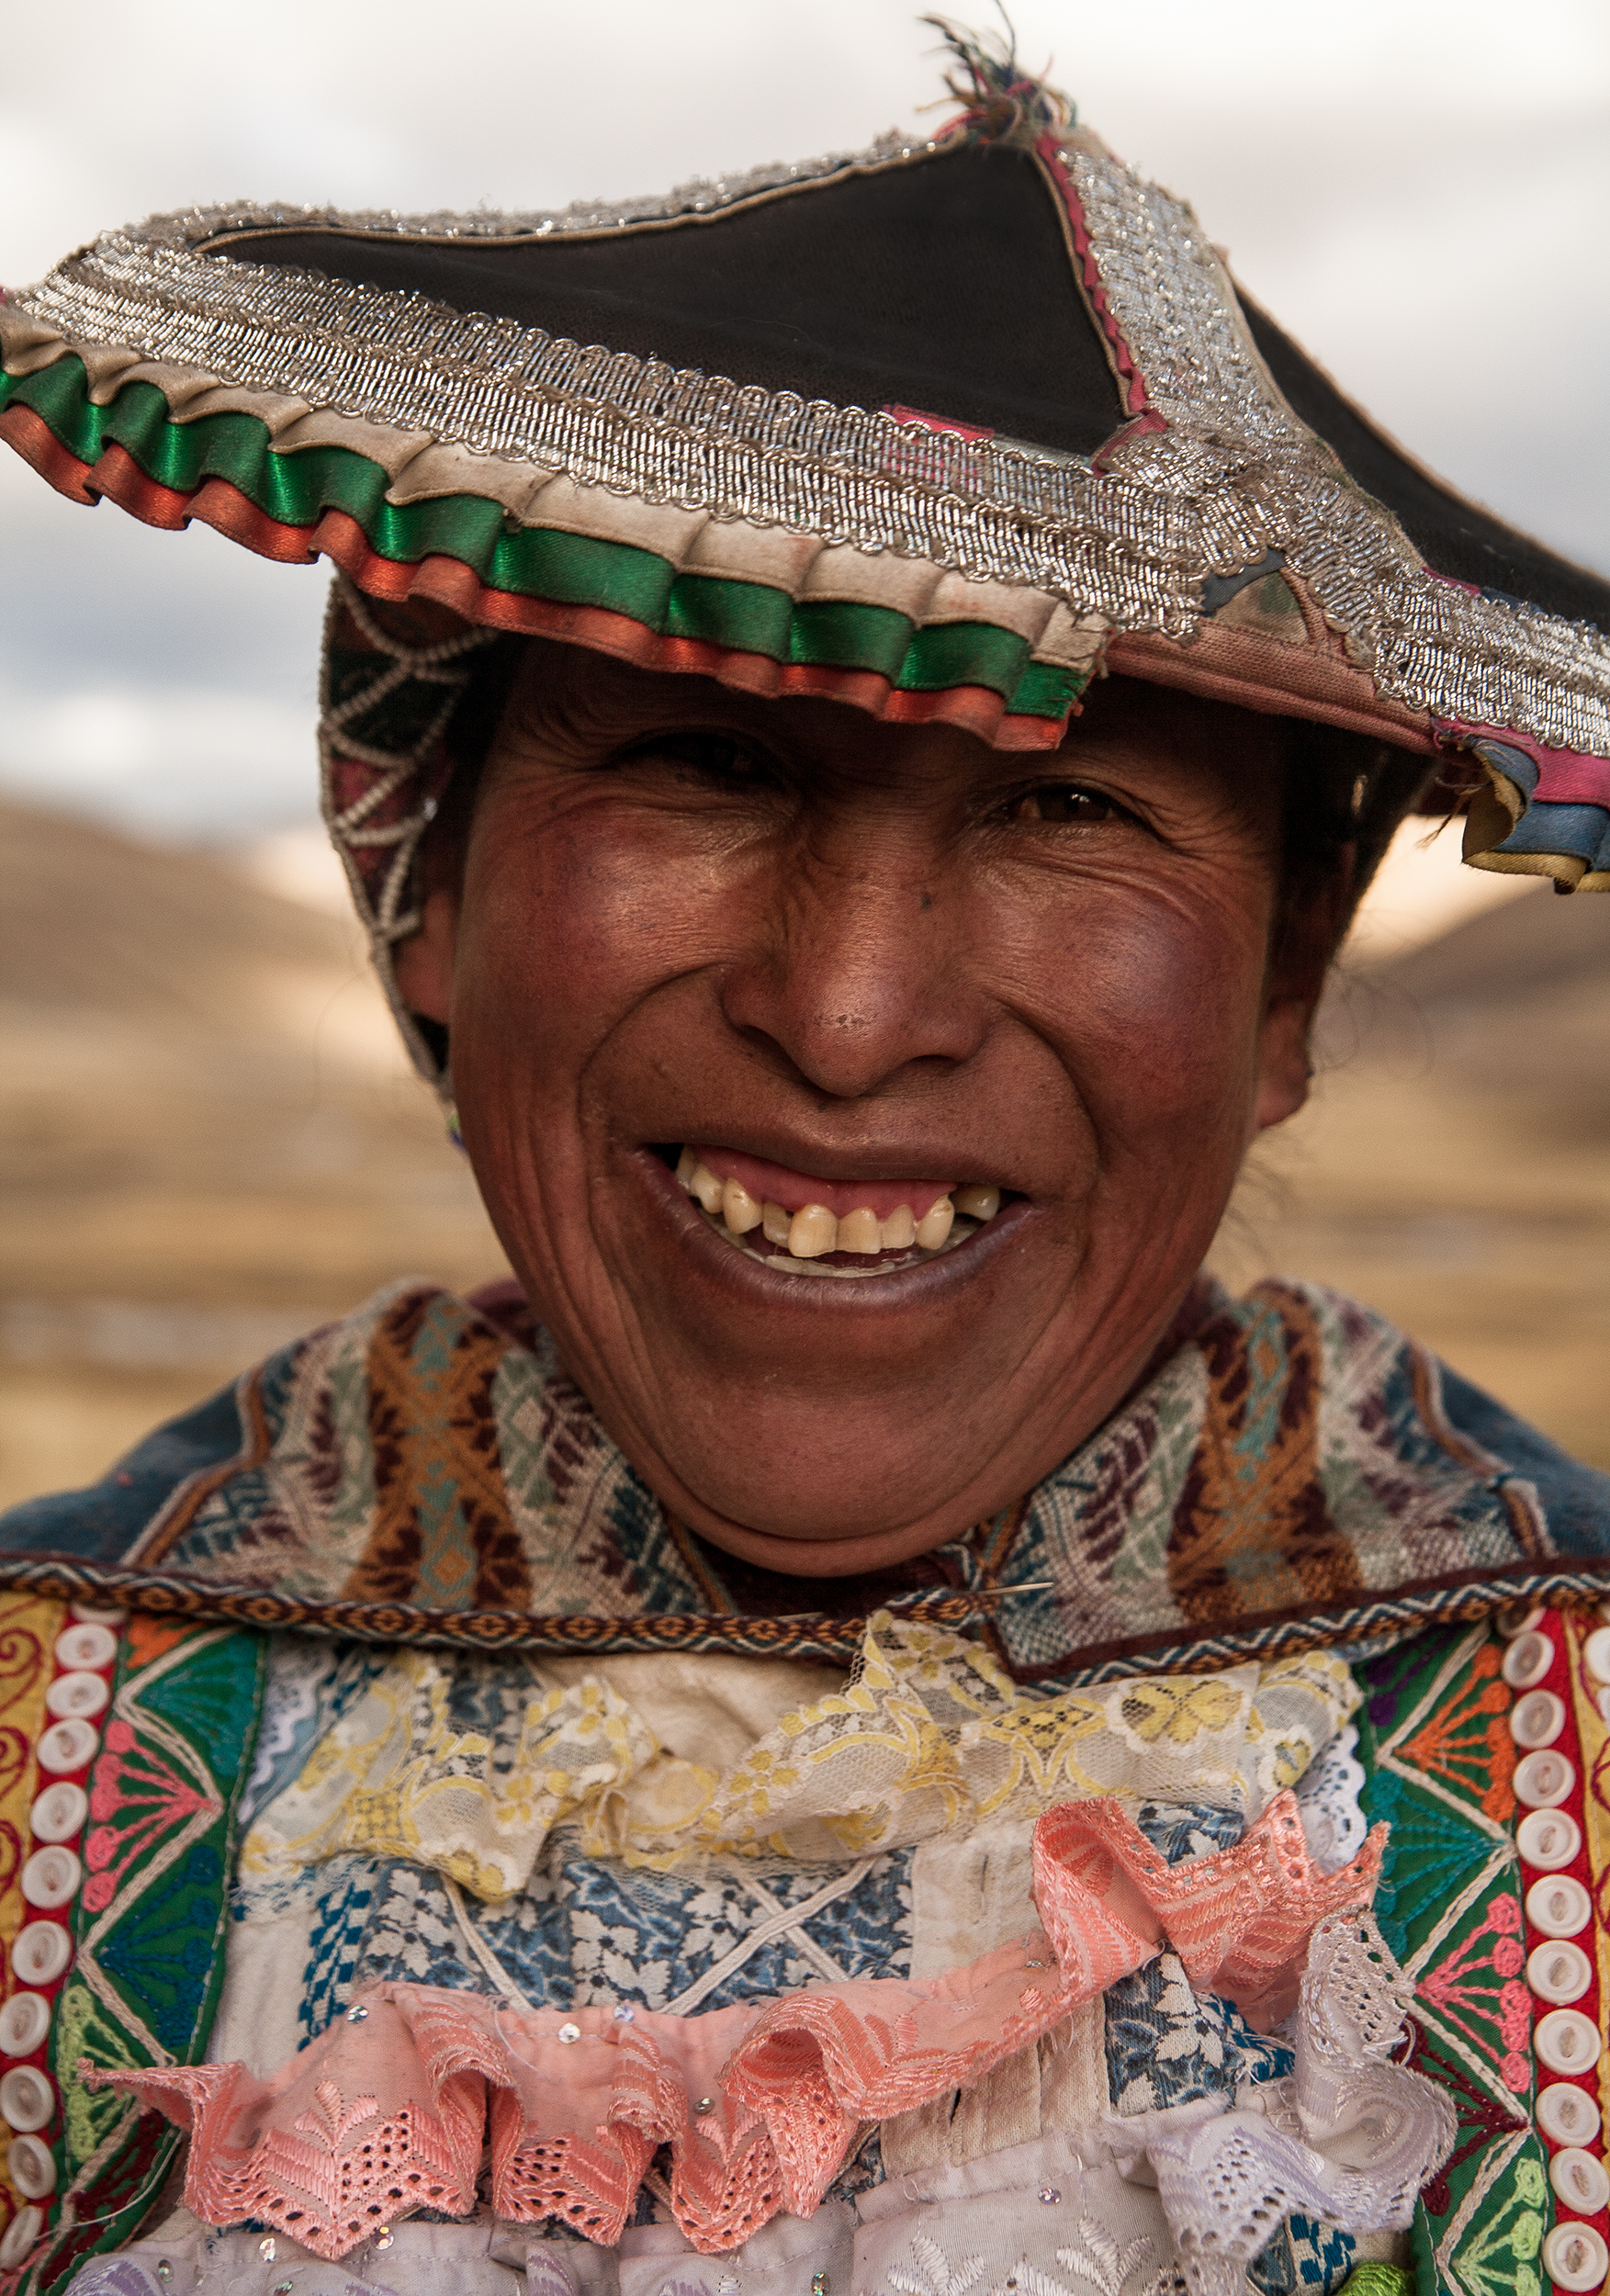 Pastor at Ausangate Valey, The Andes, Peru